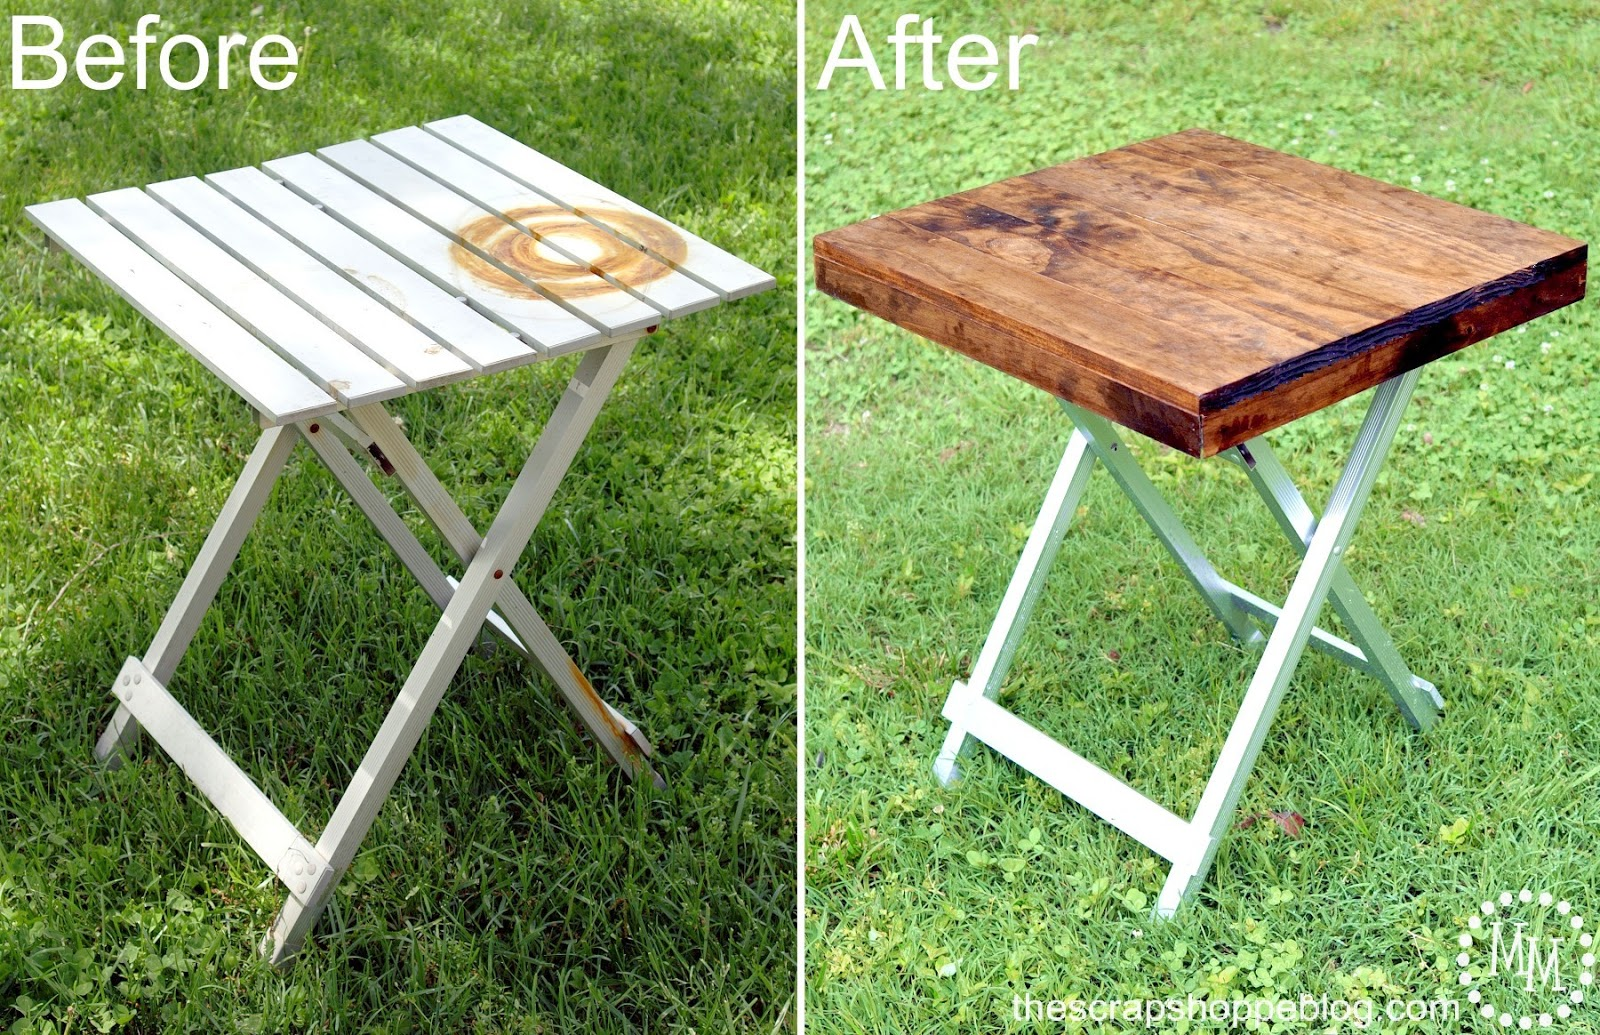 Make A NEW Table Top And Spray Paint Those Legs!